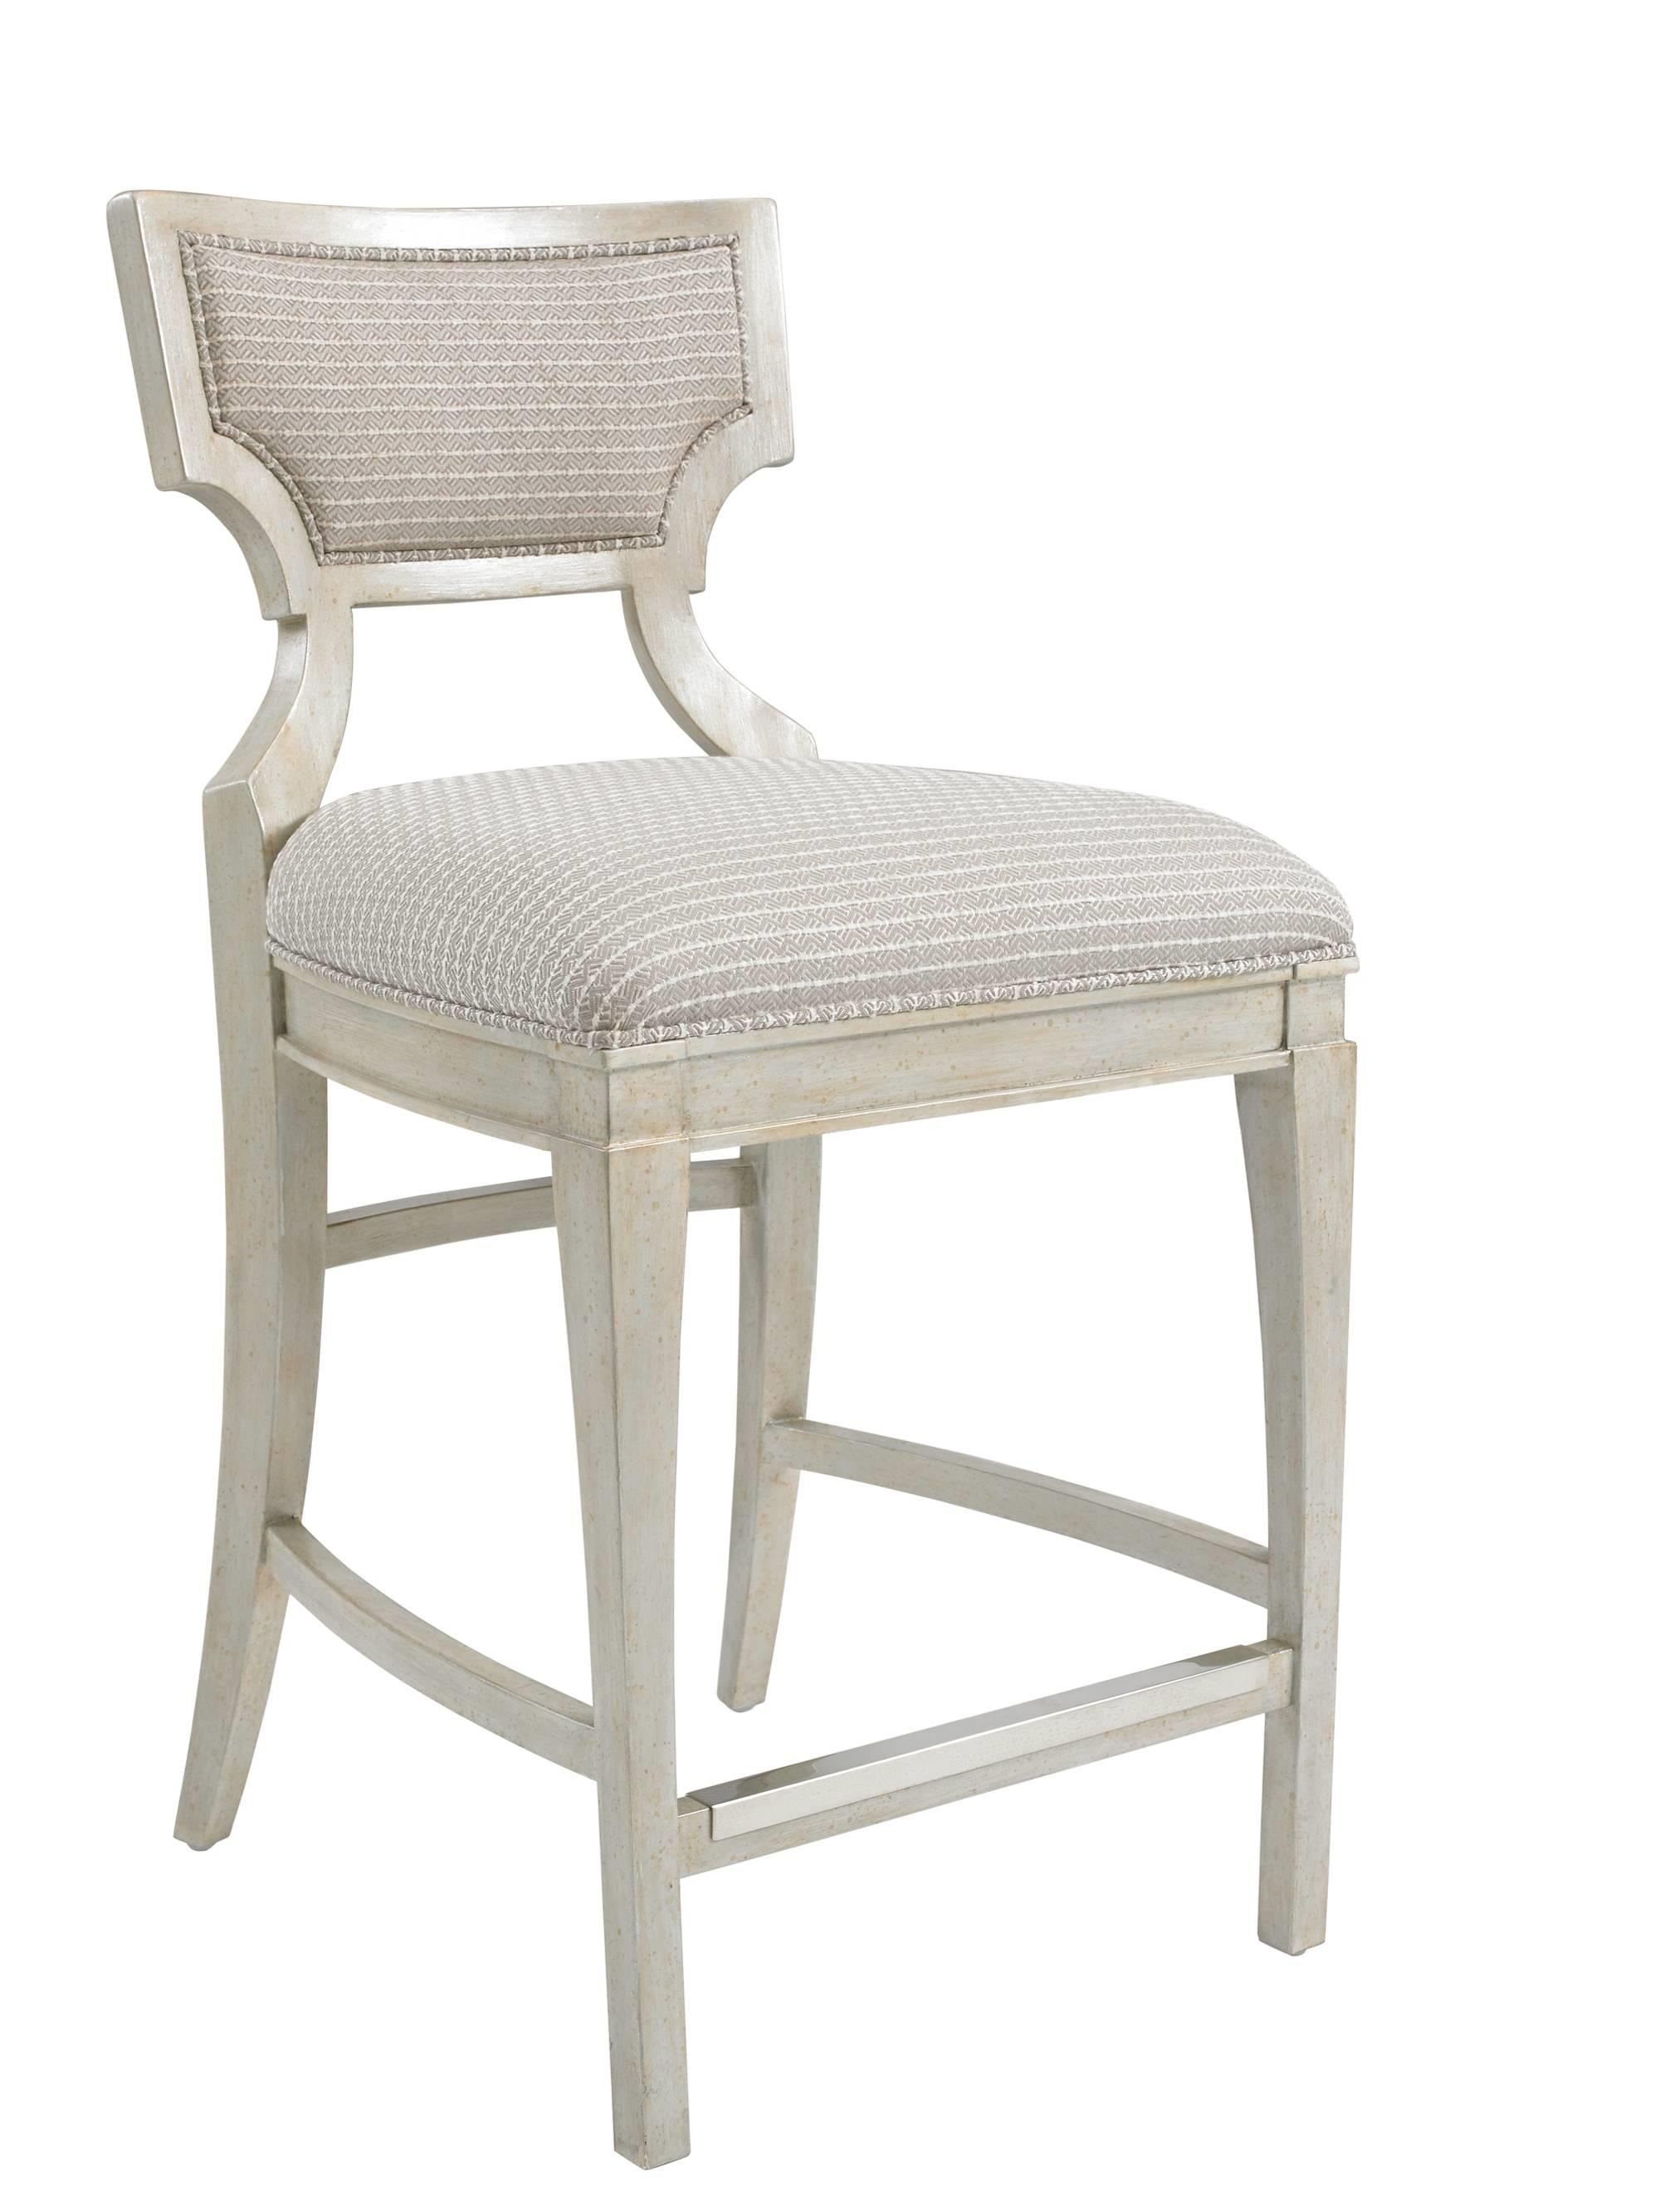 Stanley Furniture Fairlane Counter Stool - Item Number: 417-21-72